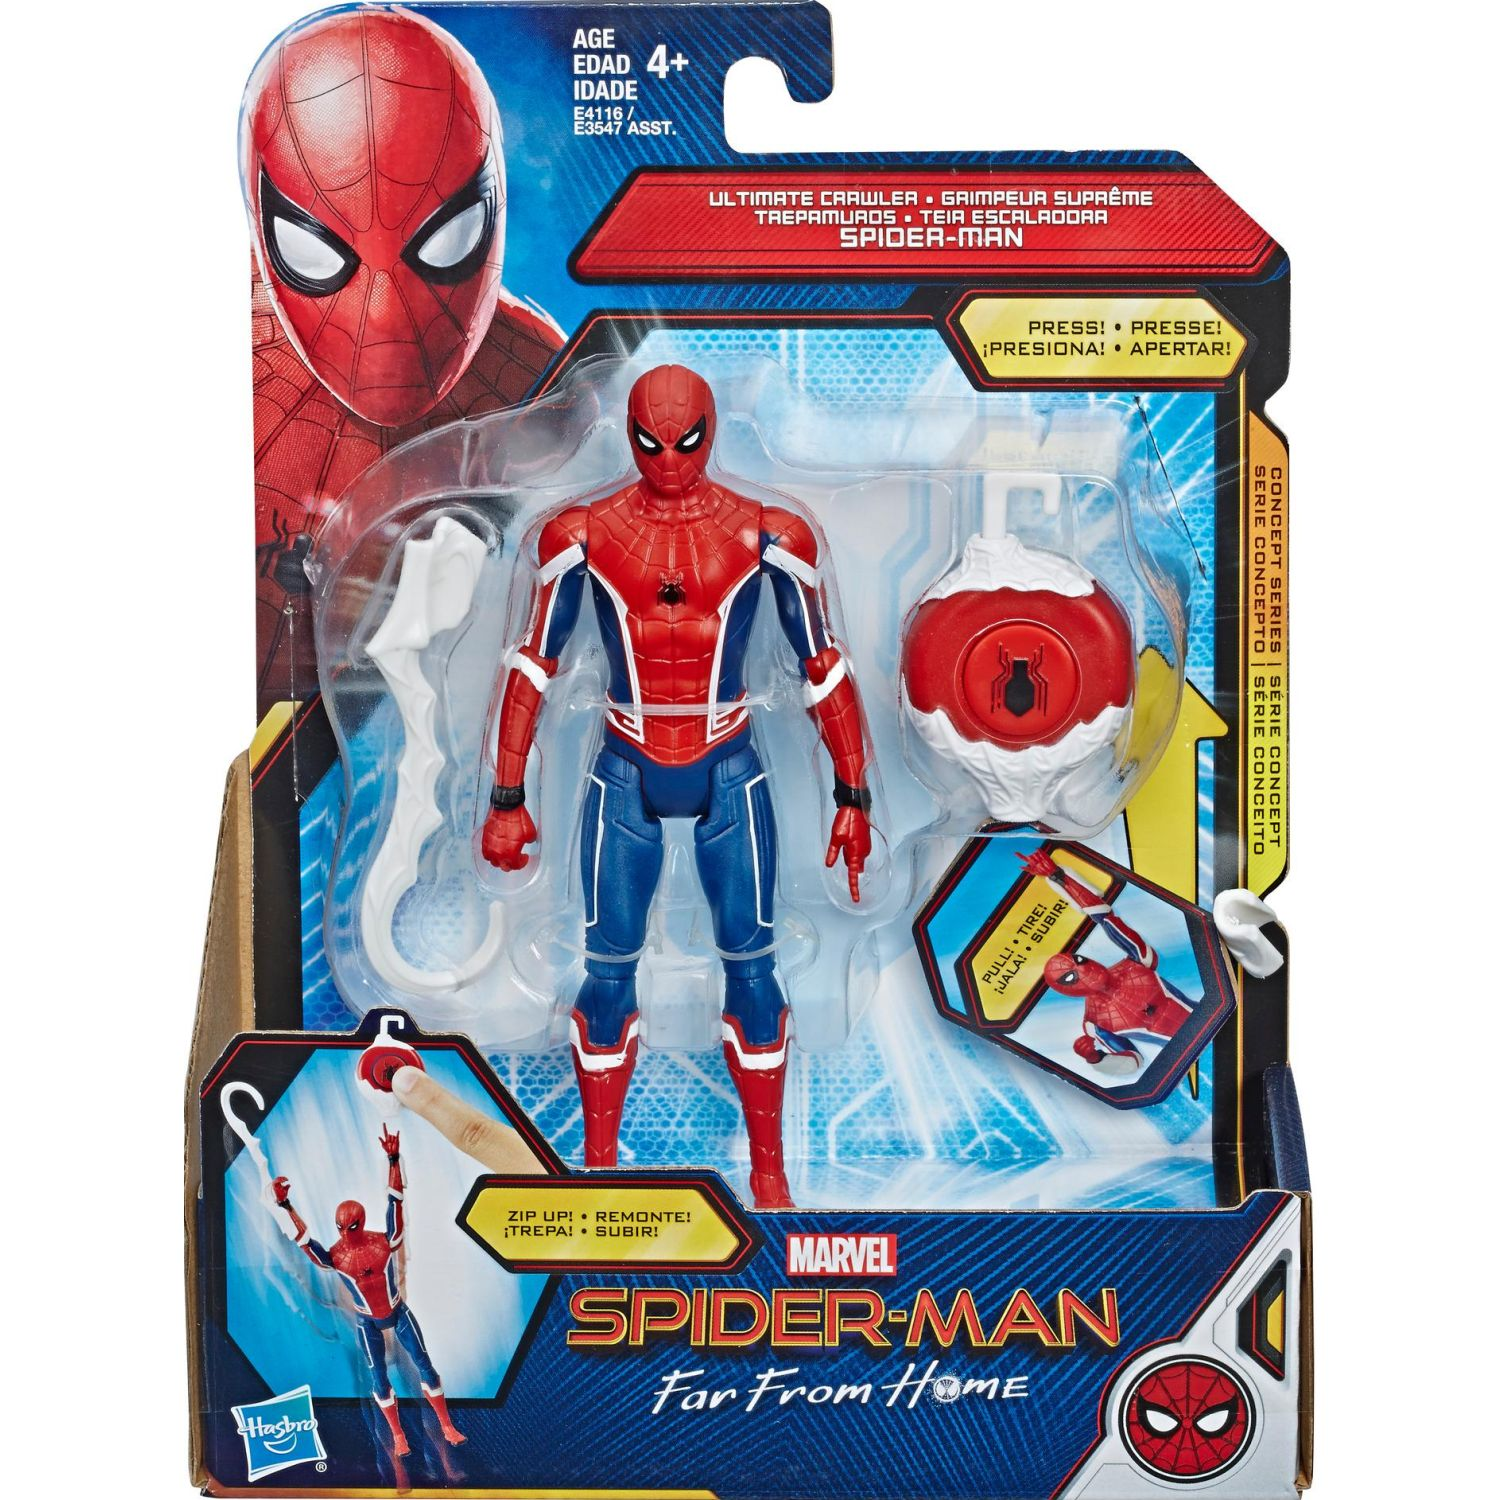 SPIDER-MAN spd ffh 6in ultimate crawler spd Varios Figuras de acción